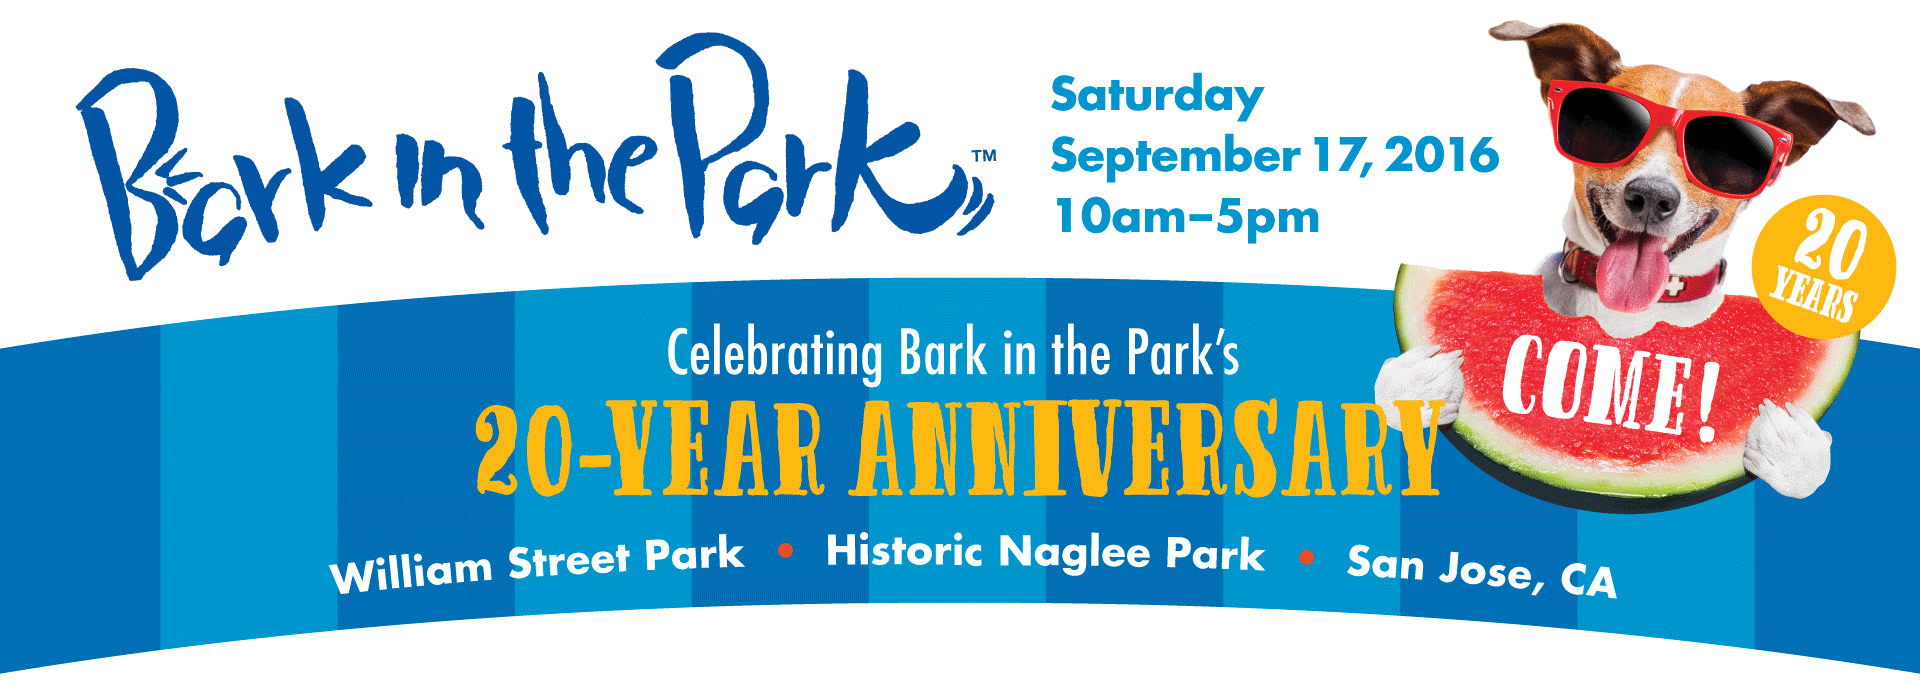 Bark in the Park San Jose, Sept.19, 10-5, William Street Park in downtown San Jose